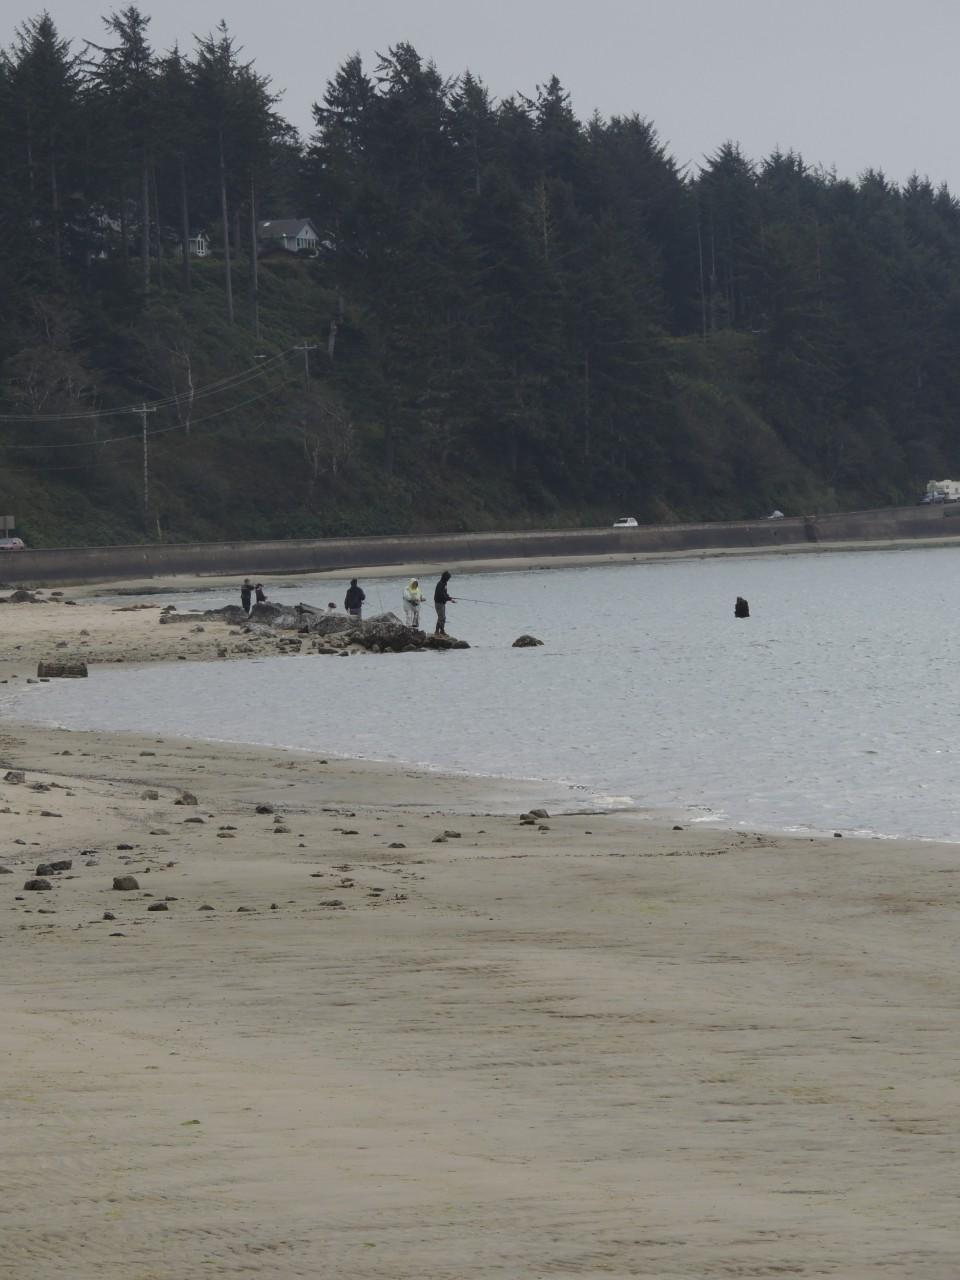 People fishing by The Interpretative Center in waldport